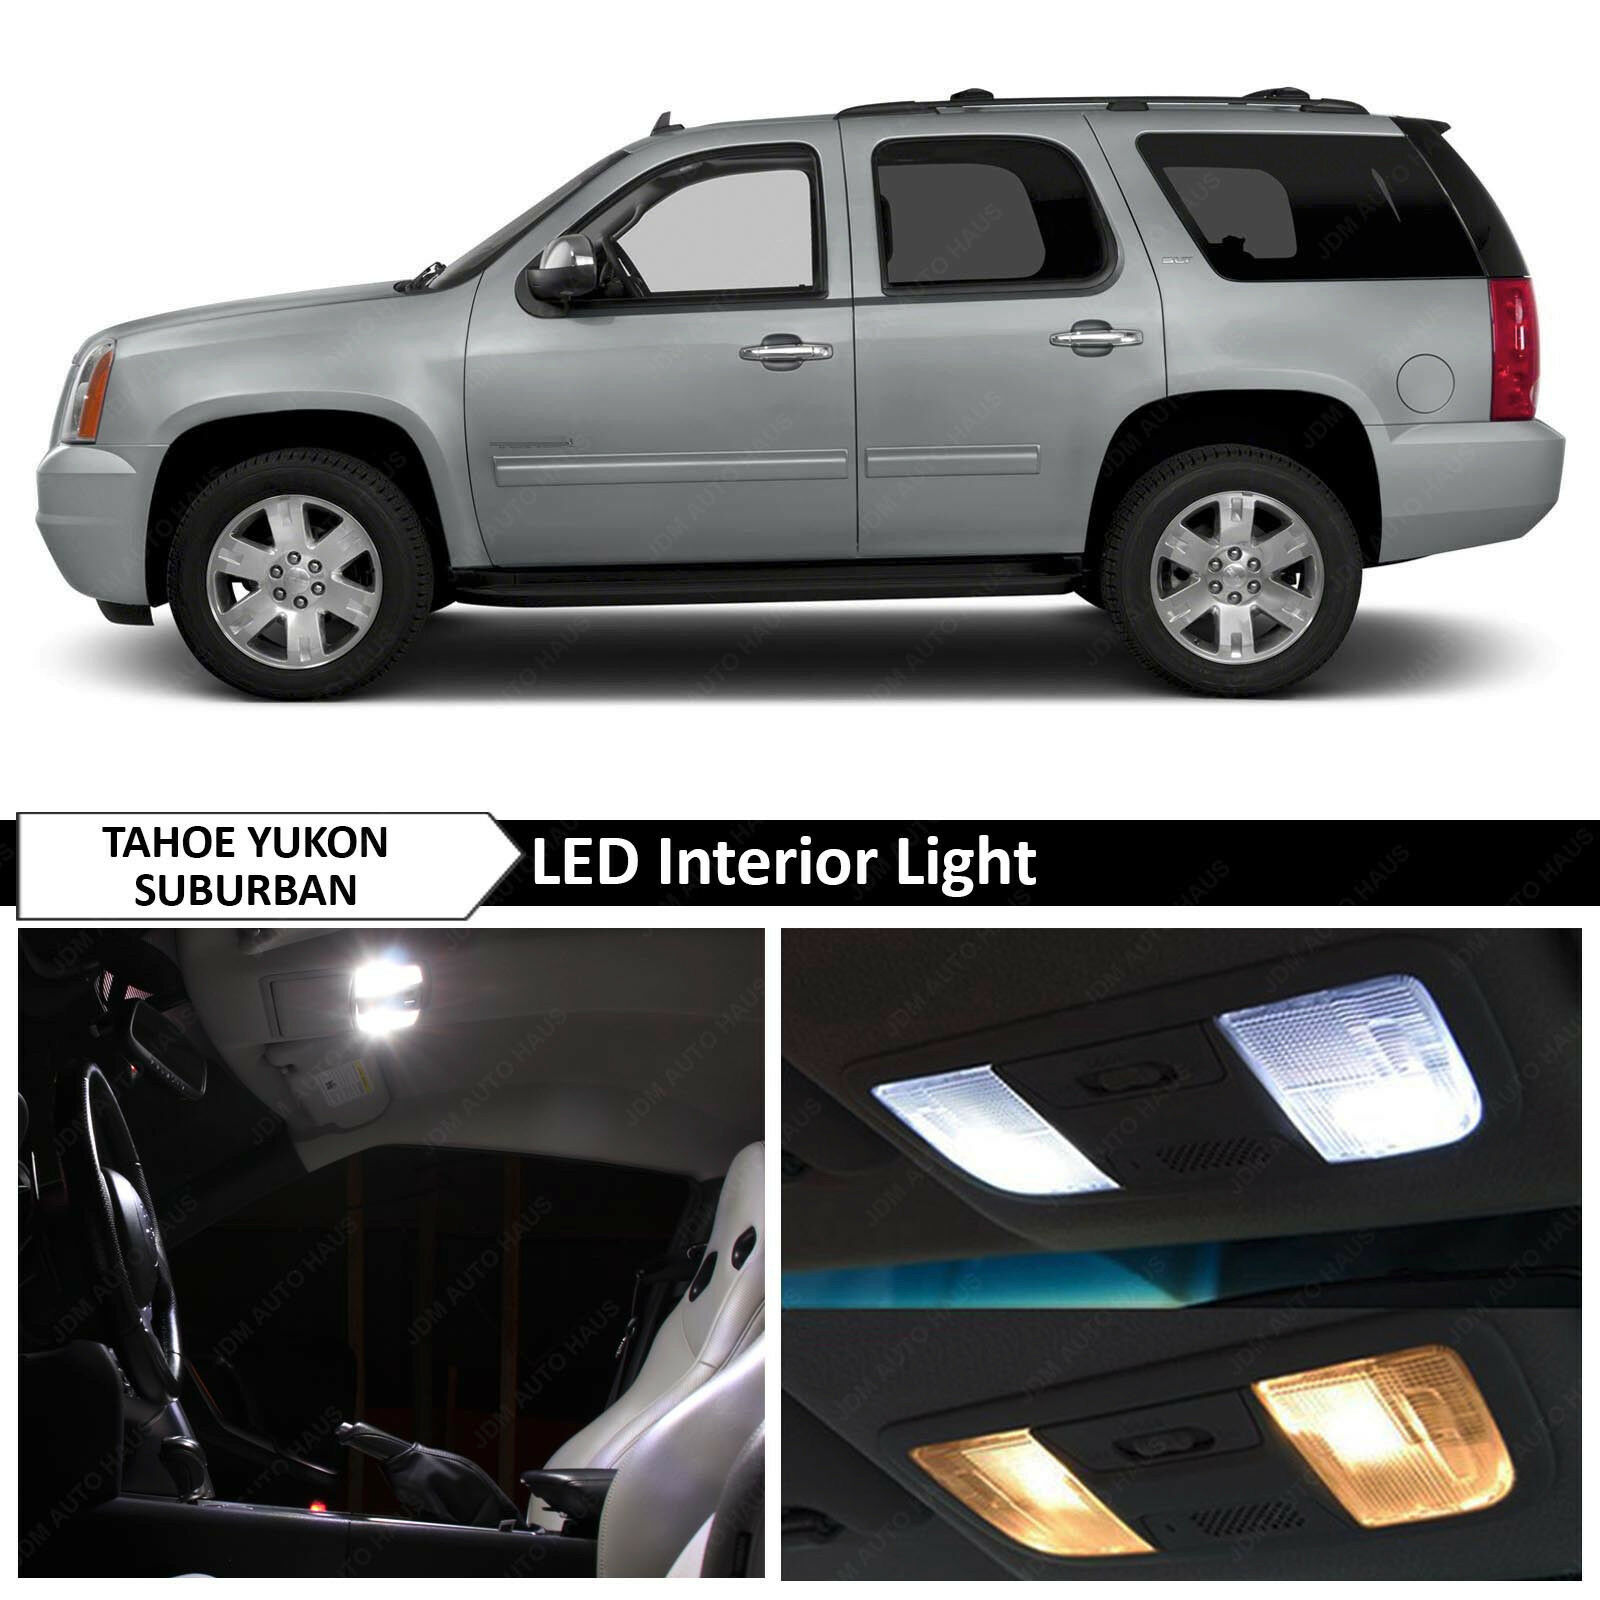 buick bl details layne claxton durrence ga vehicle chevrolet gmc new tahoe premier